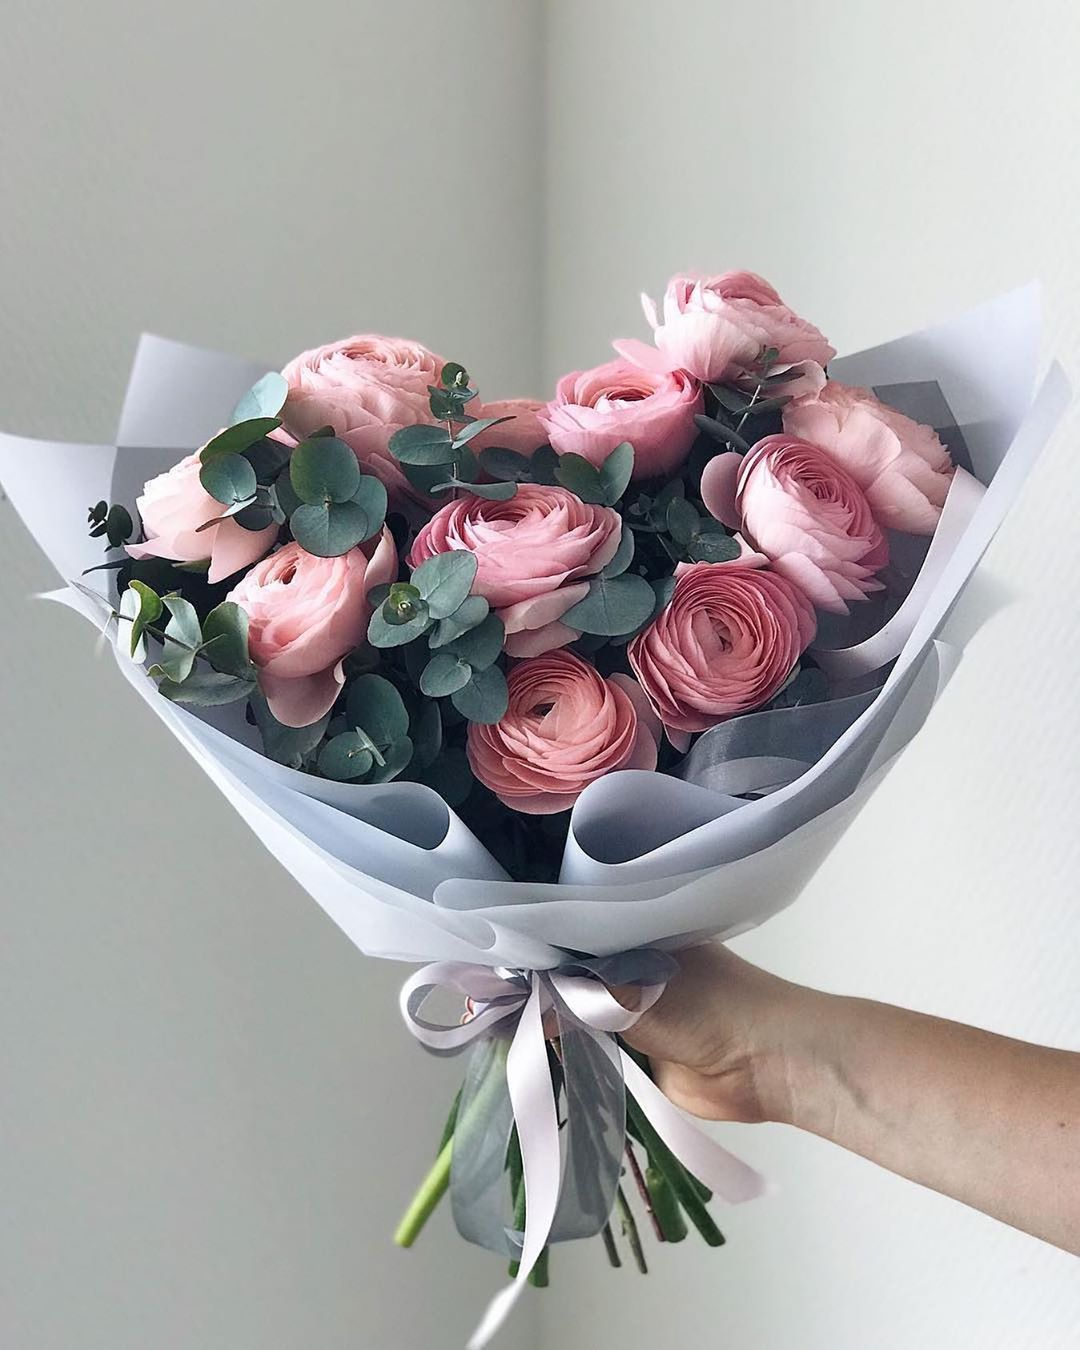 The Wedding Bliss On Instagram Some Gorgeous Flowers For Friday By Flowerna Ru Thew In 2020 Luxury Flowers Beautiful Flower Arrangements Flowers Bouquet Gift